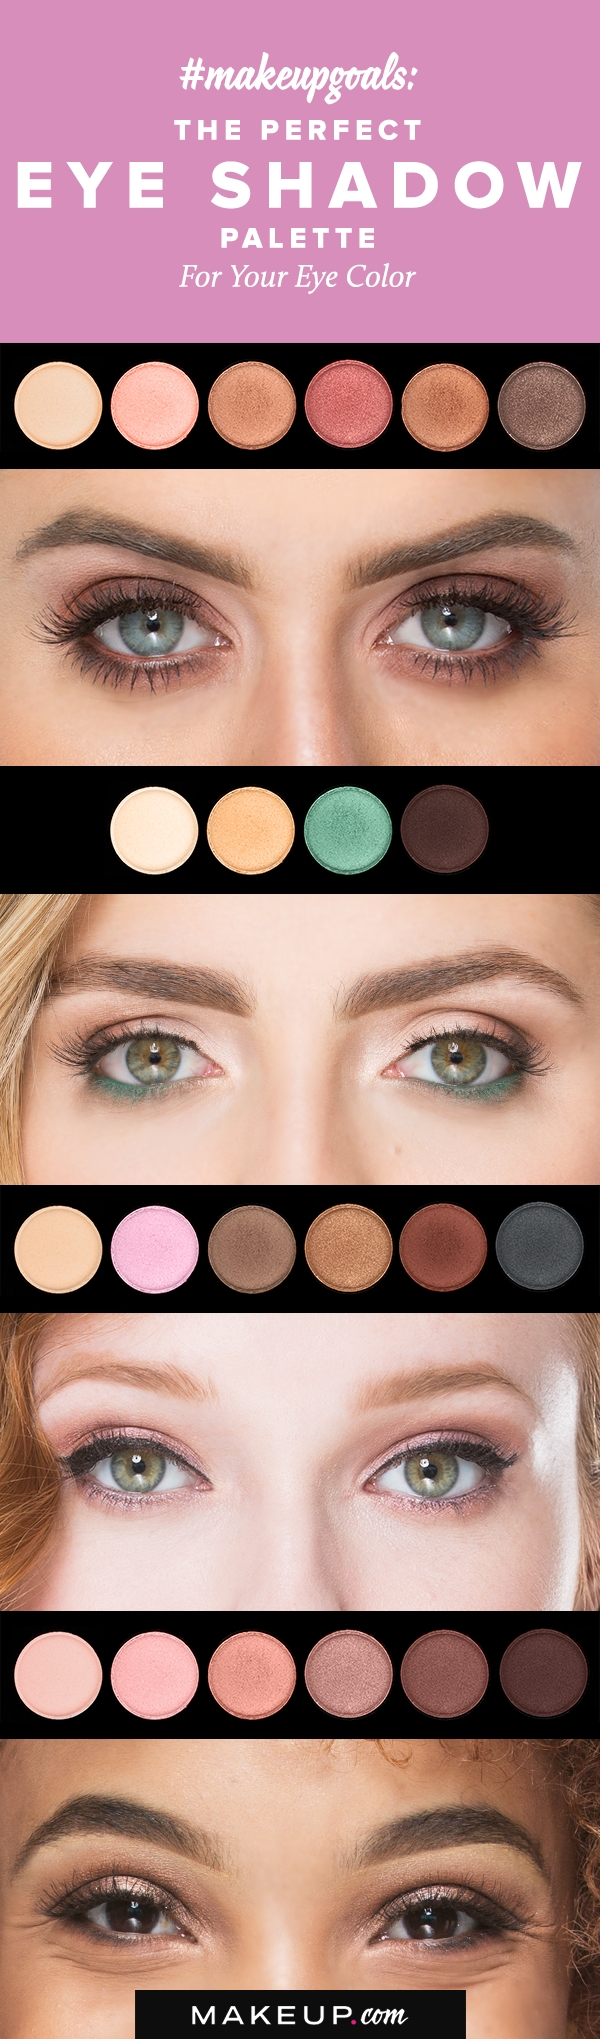 best eyeshadow palettes for green eyes - wavy haircut